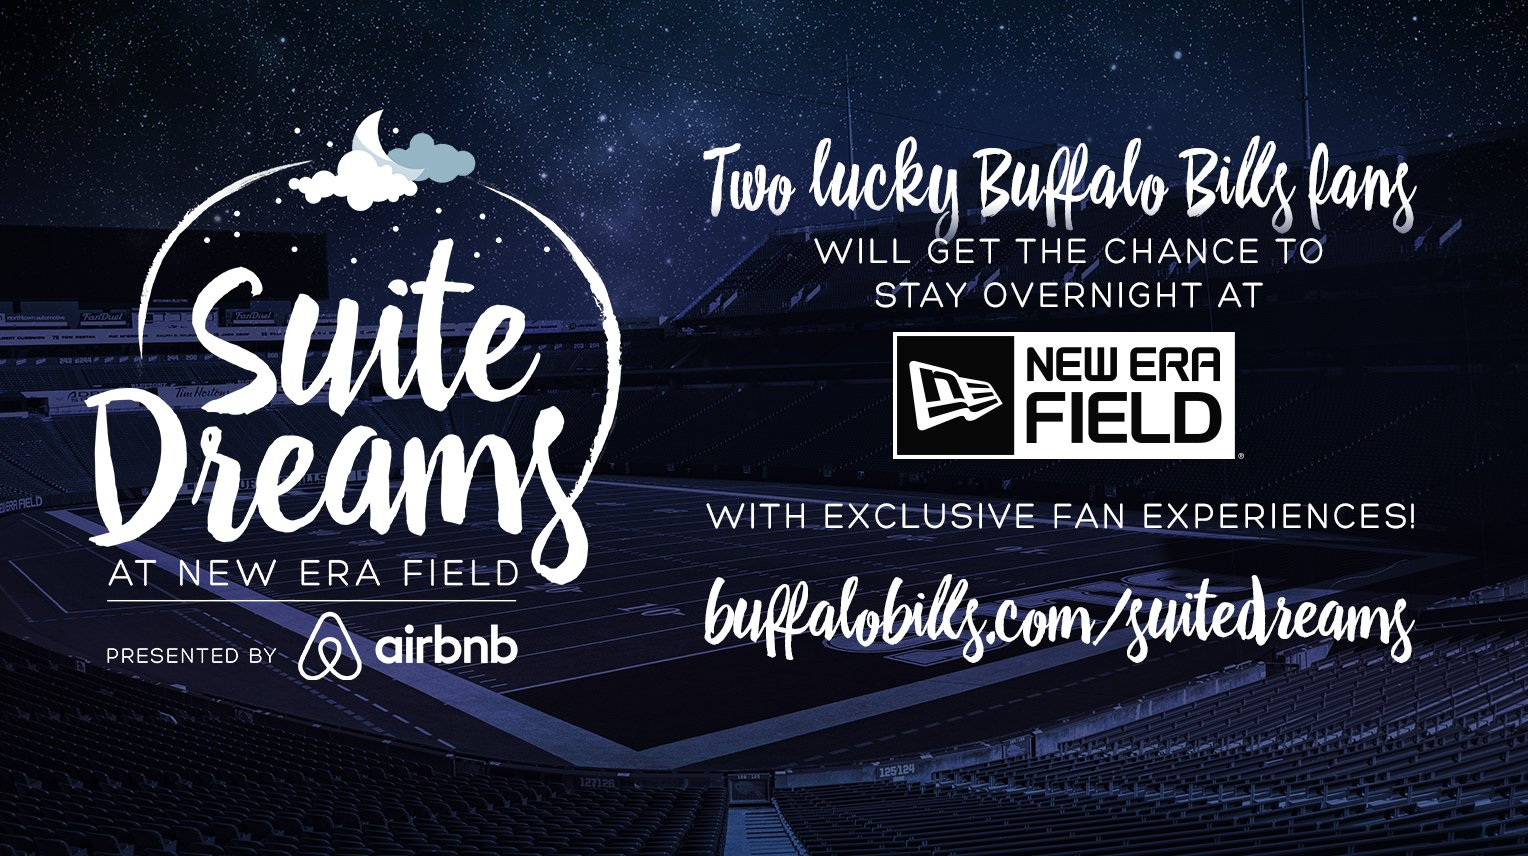 Here's your chance to be the first fan to spend the night at @newerafield!  Suite Dreams: https://t.co/5ncpUp8J3f https://t.co/mGBoRaRi7T